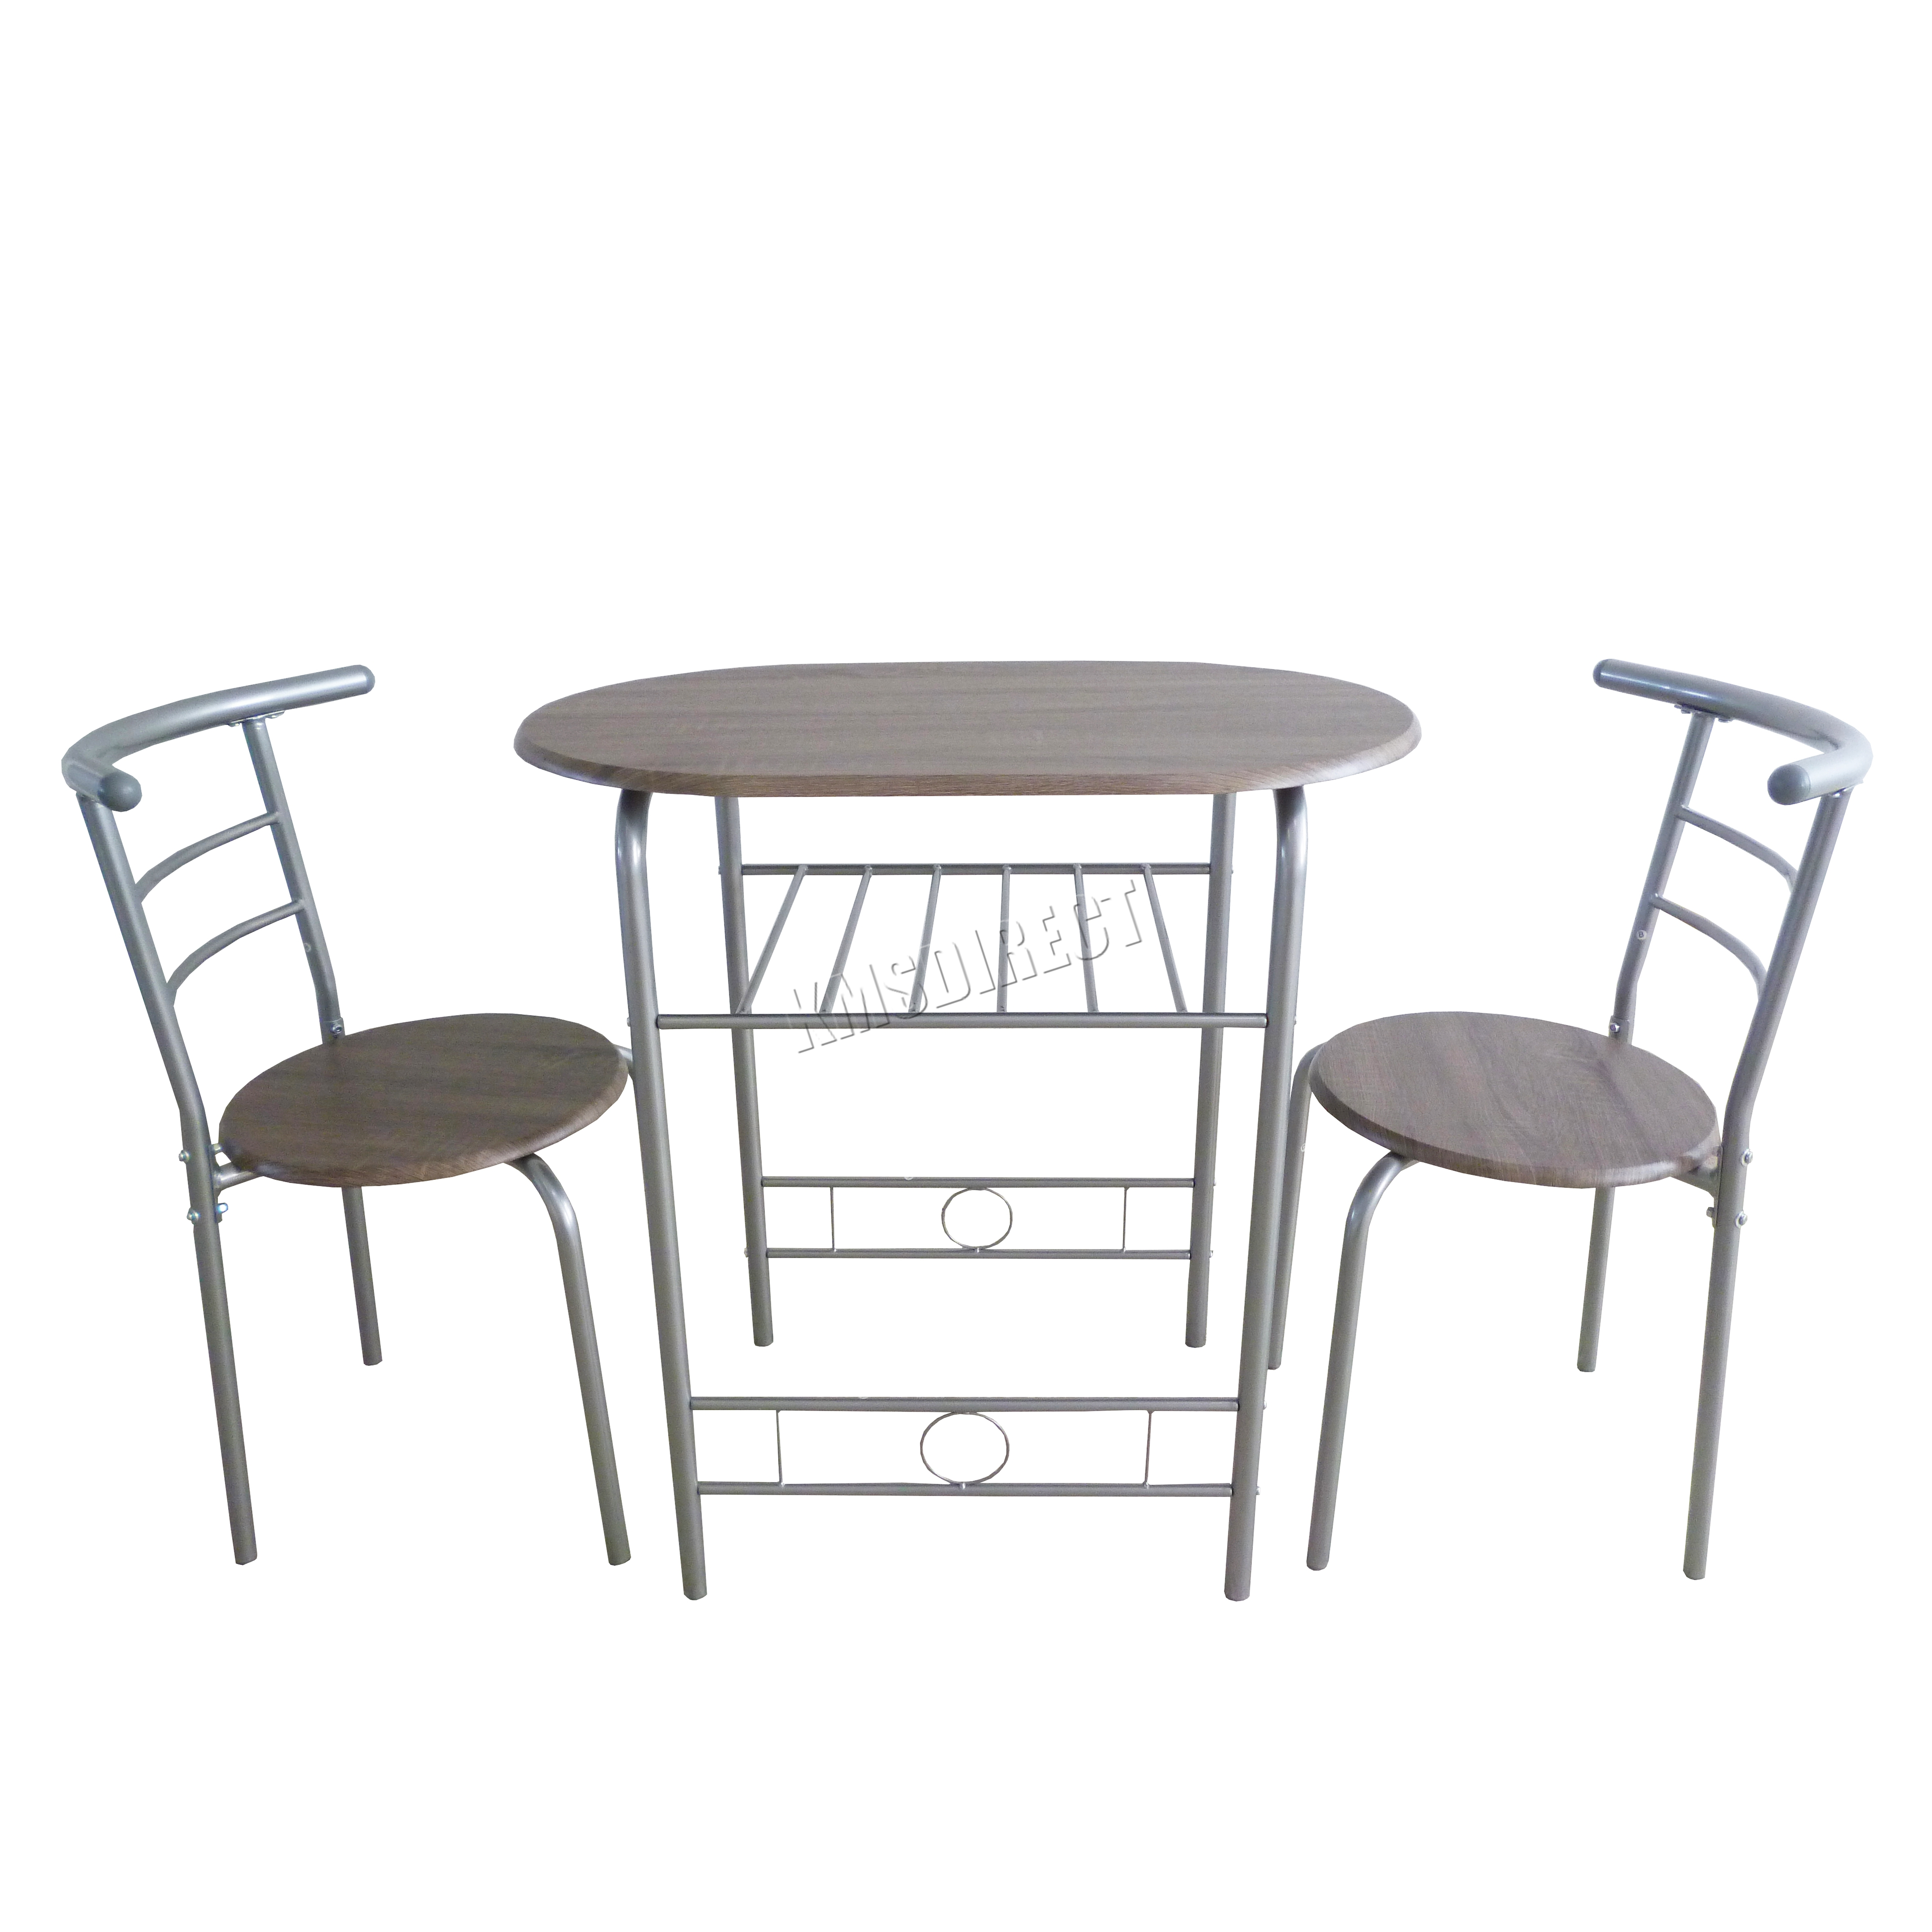 Sentinel Foxhunter Dining Table Breakfast Bar 2 Chair Set Metal Mdf Kitchen Ds06 Silver